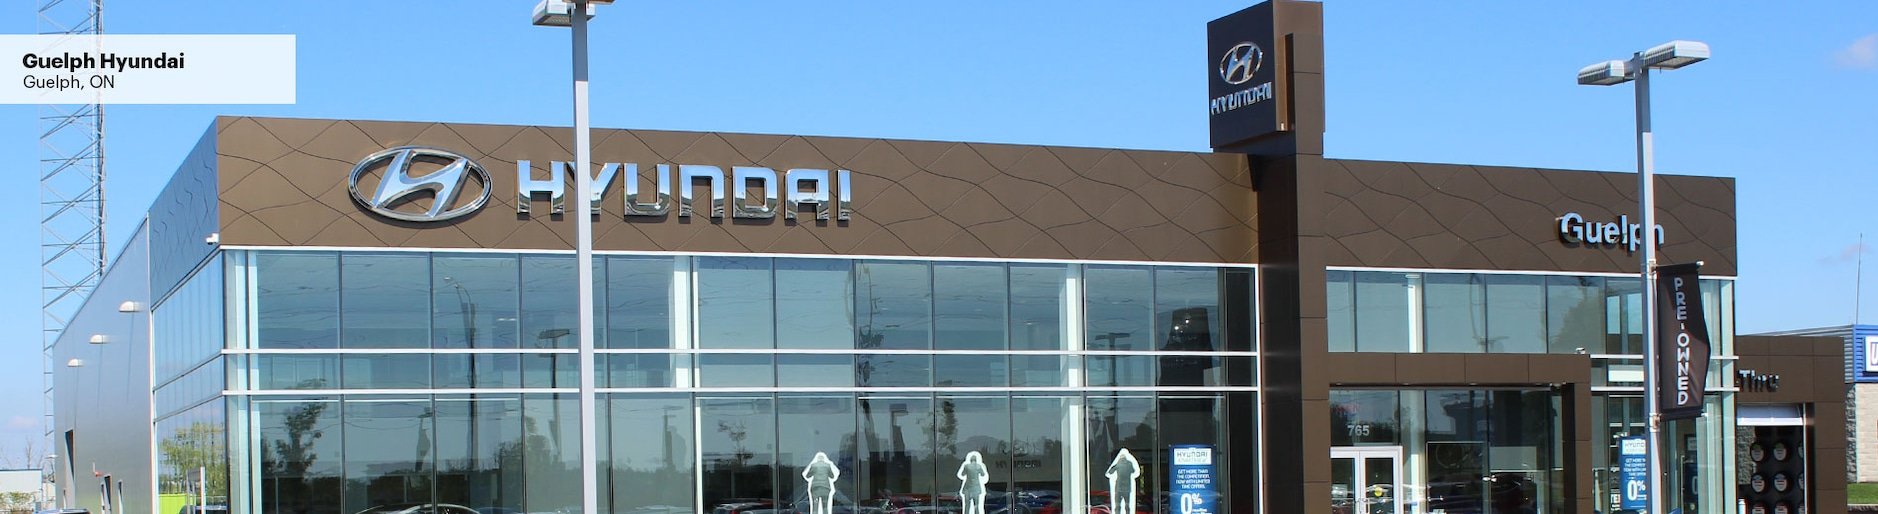 genesis news contract with brand dealer hyundai photos signs first dealerships us for